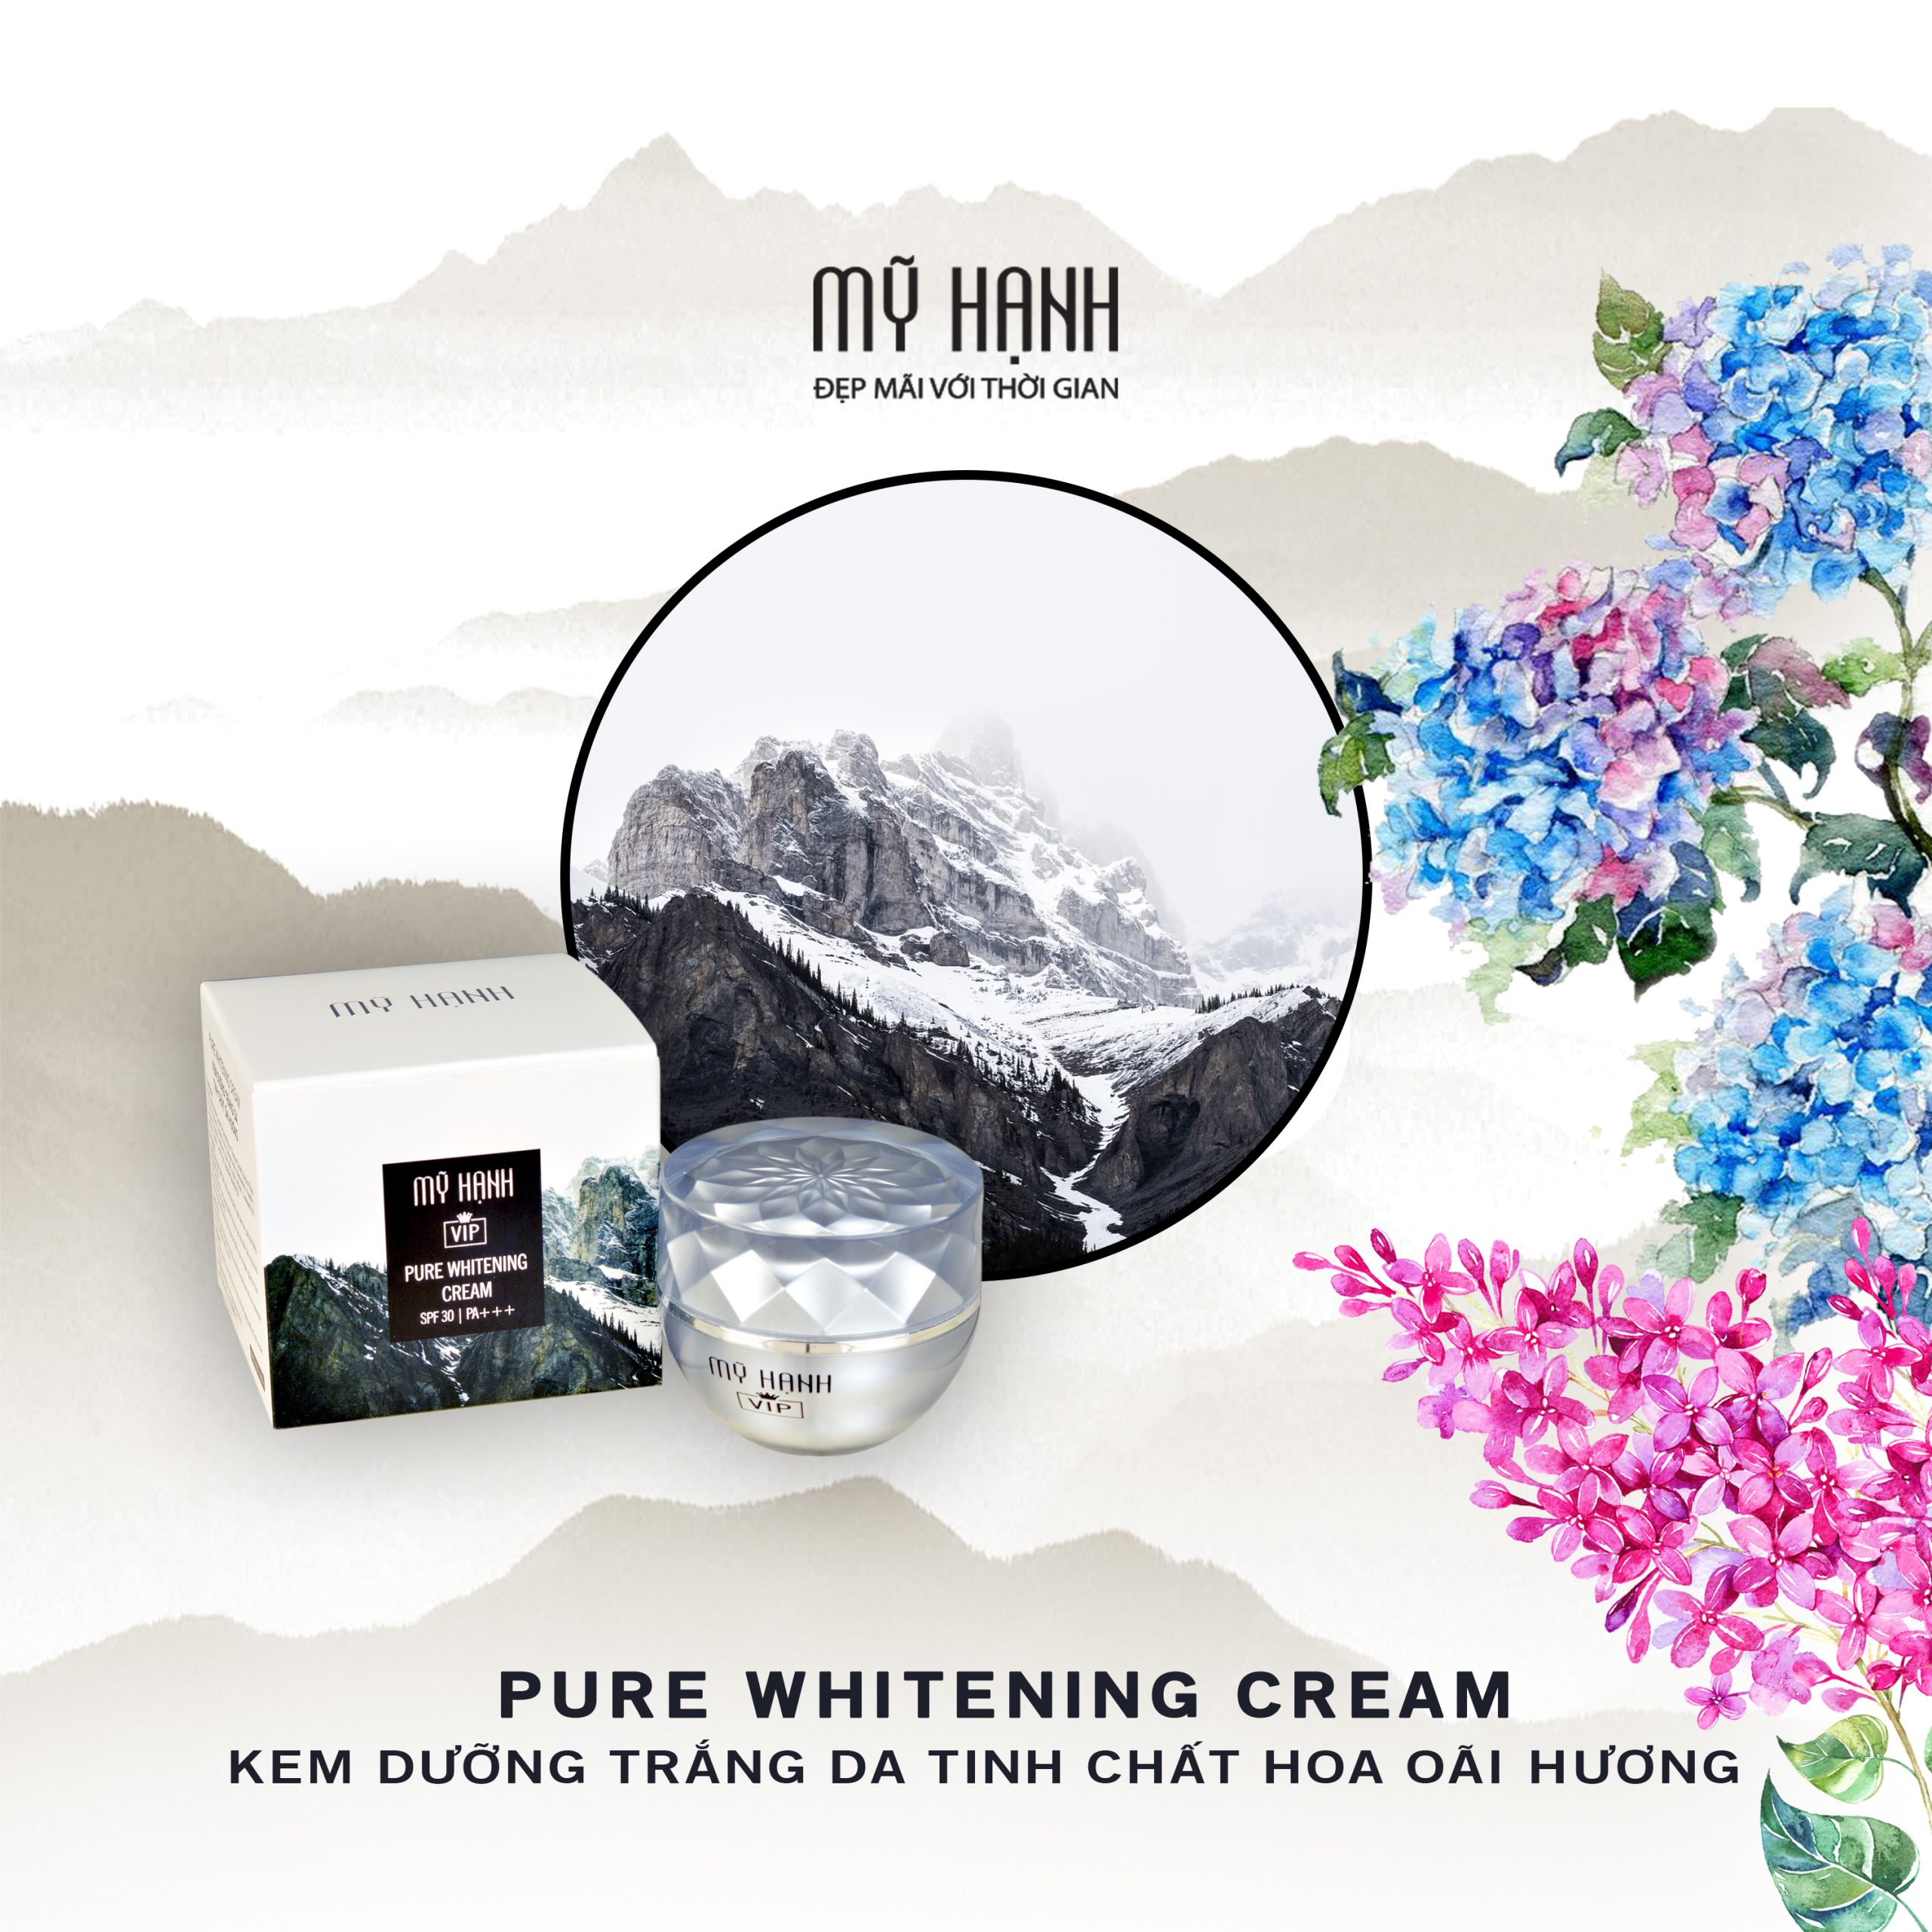 PURE WHITENING CREAM A